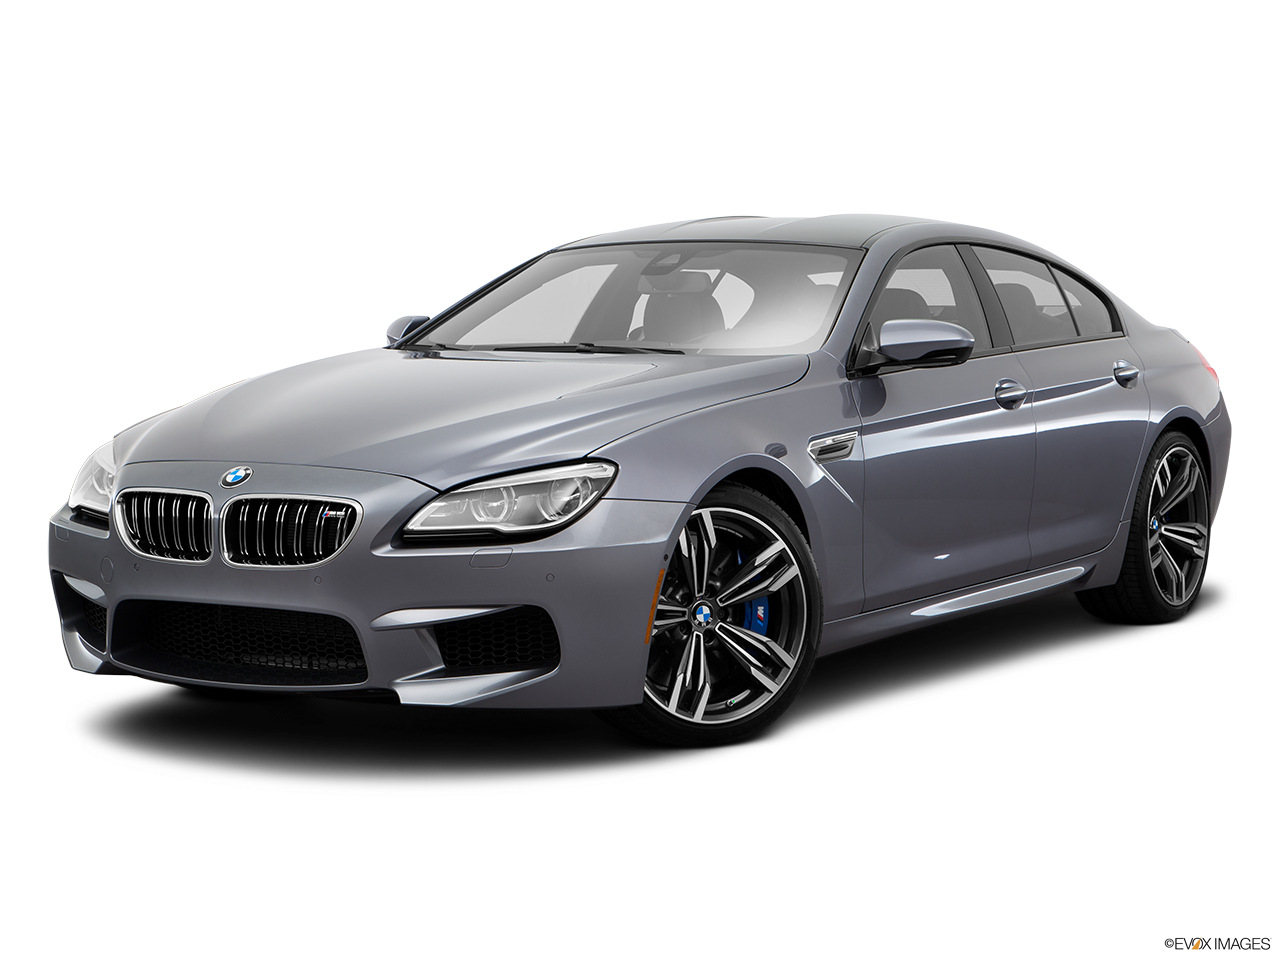 remote control car roads with 2016 Bmw M6 Dealer In H Ton Roads on 1477812349925017 together with Uae Police Smart Cars To Hit The Road By 2020 furthermore Rc Cars en softonic moreover Grand Ma Lighting Console Training moreover 1111095 2018 Alfa Romeo Stelvio First Drive.